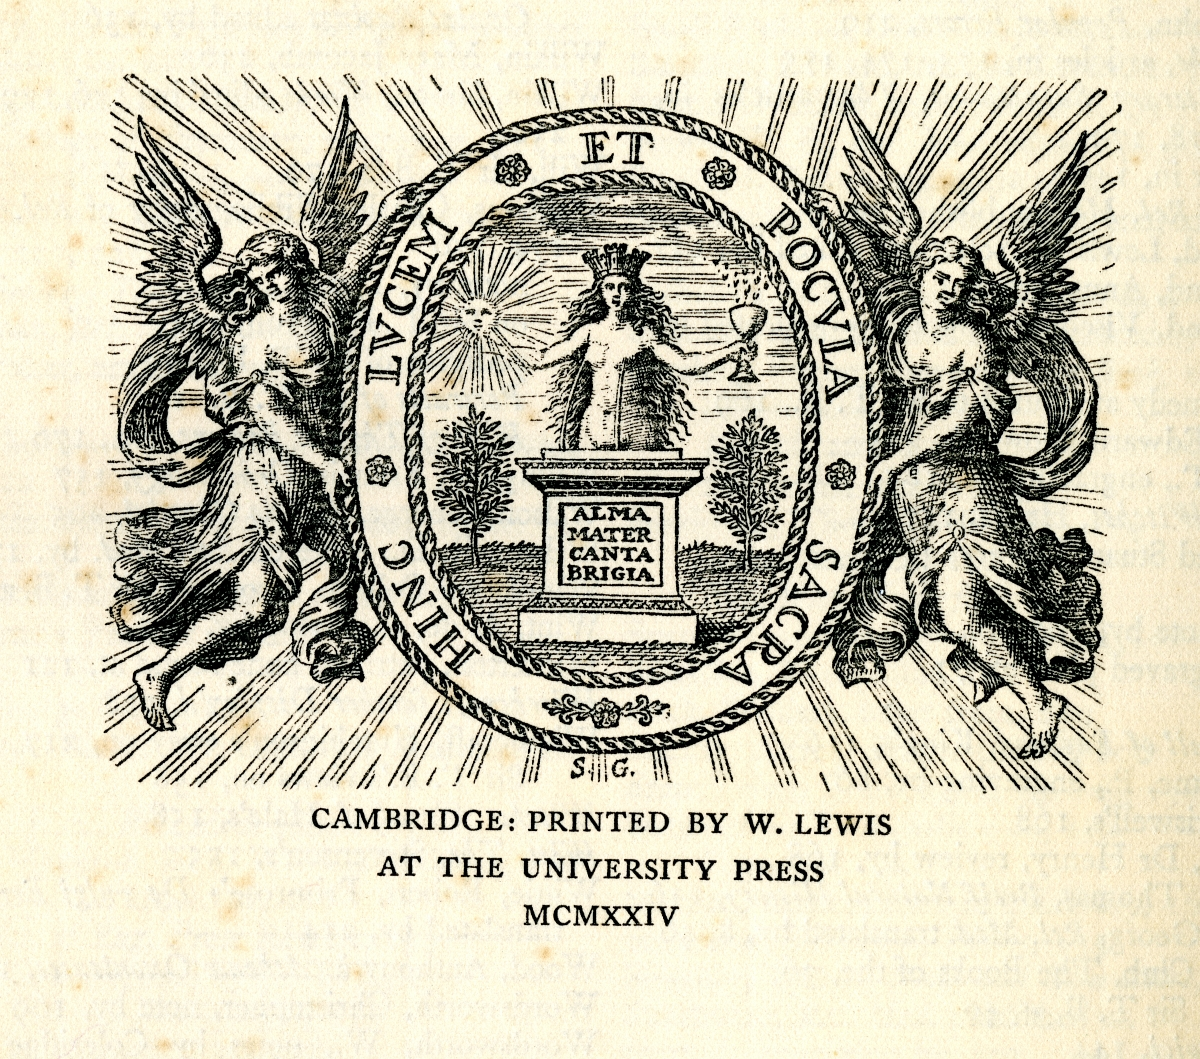 A BIBLIOGRAPHY OF SIR THOMAS BROWNE printers mark